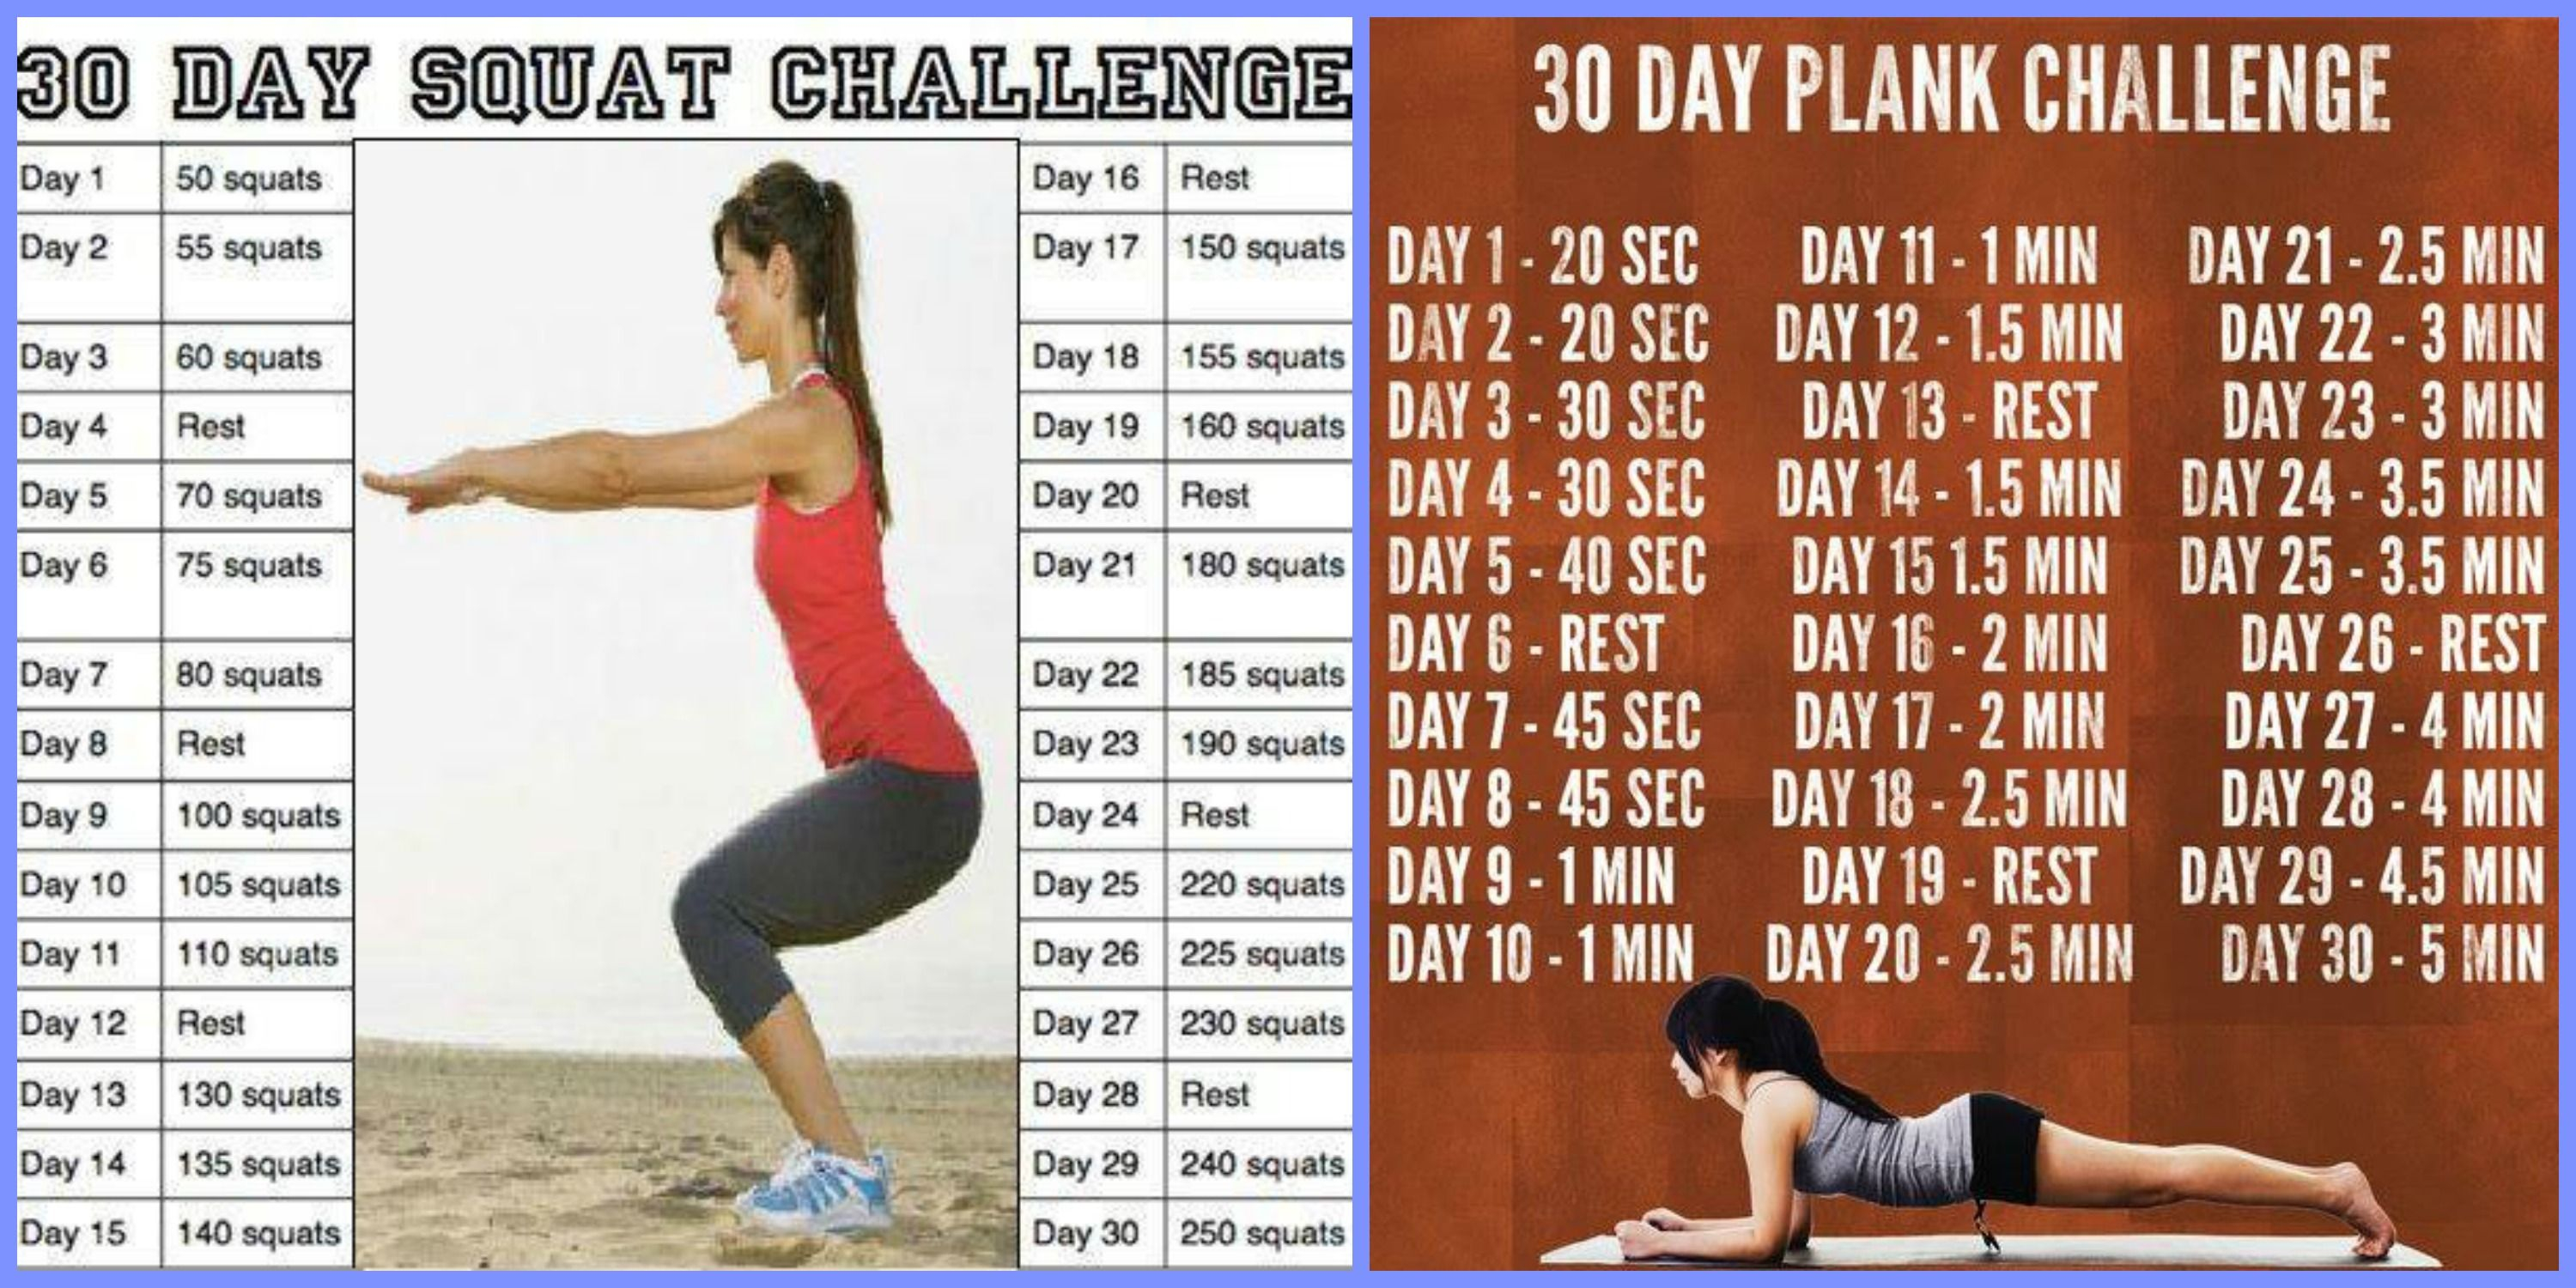 30 Day Squat Challenge Printable   30 Day Squat/plank Throughout 30 Day Sit Up And Squat Challenge Printable